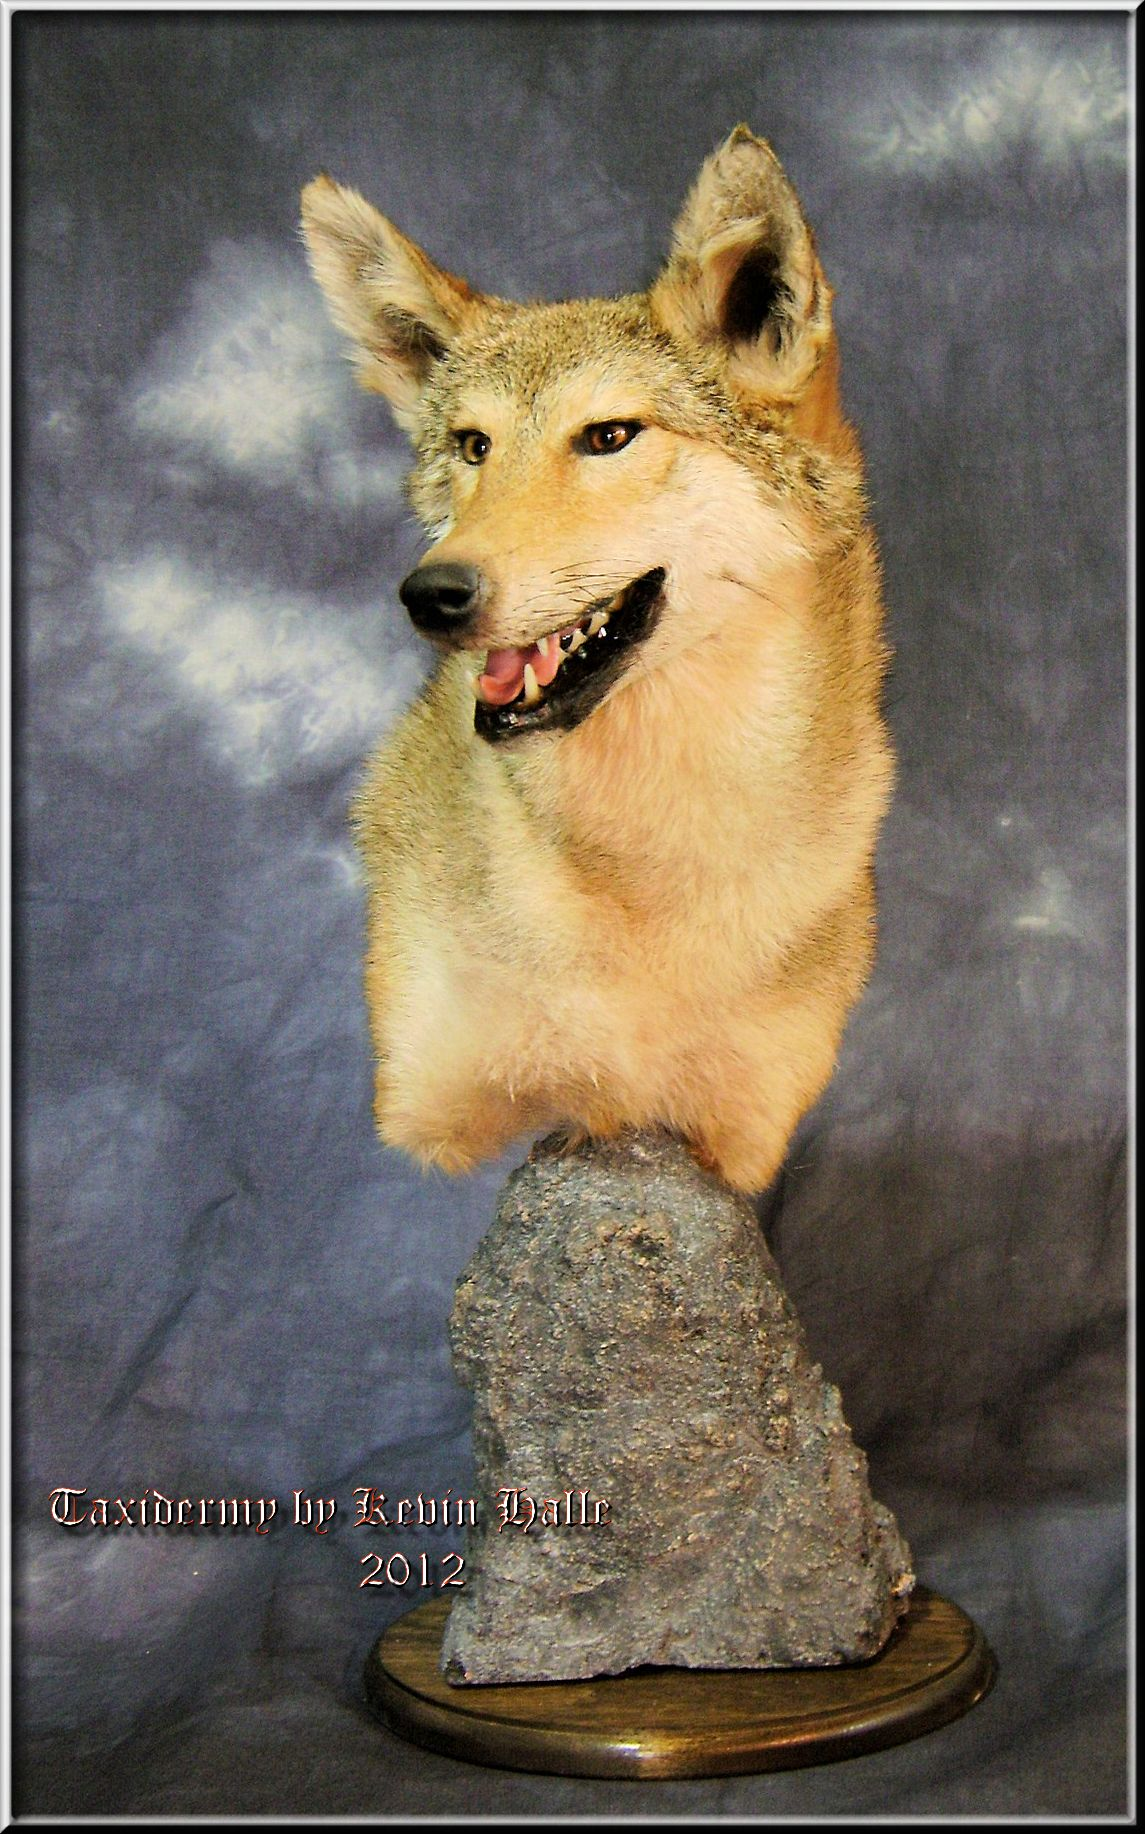 Taxidermy by Kevin Halle of the head of a coyote, St. Mary's, GA 31558